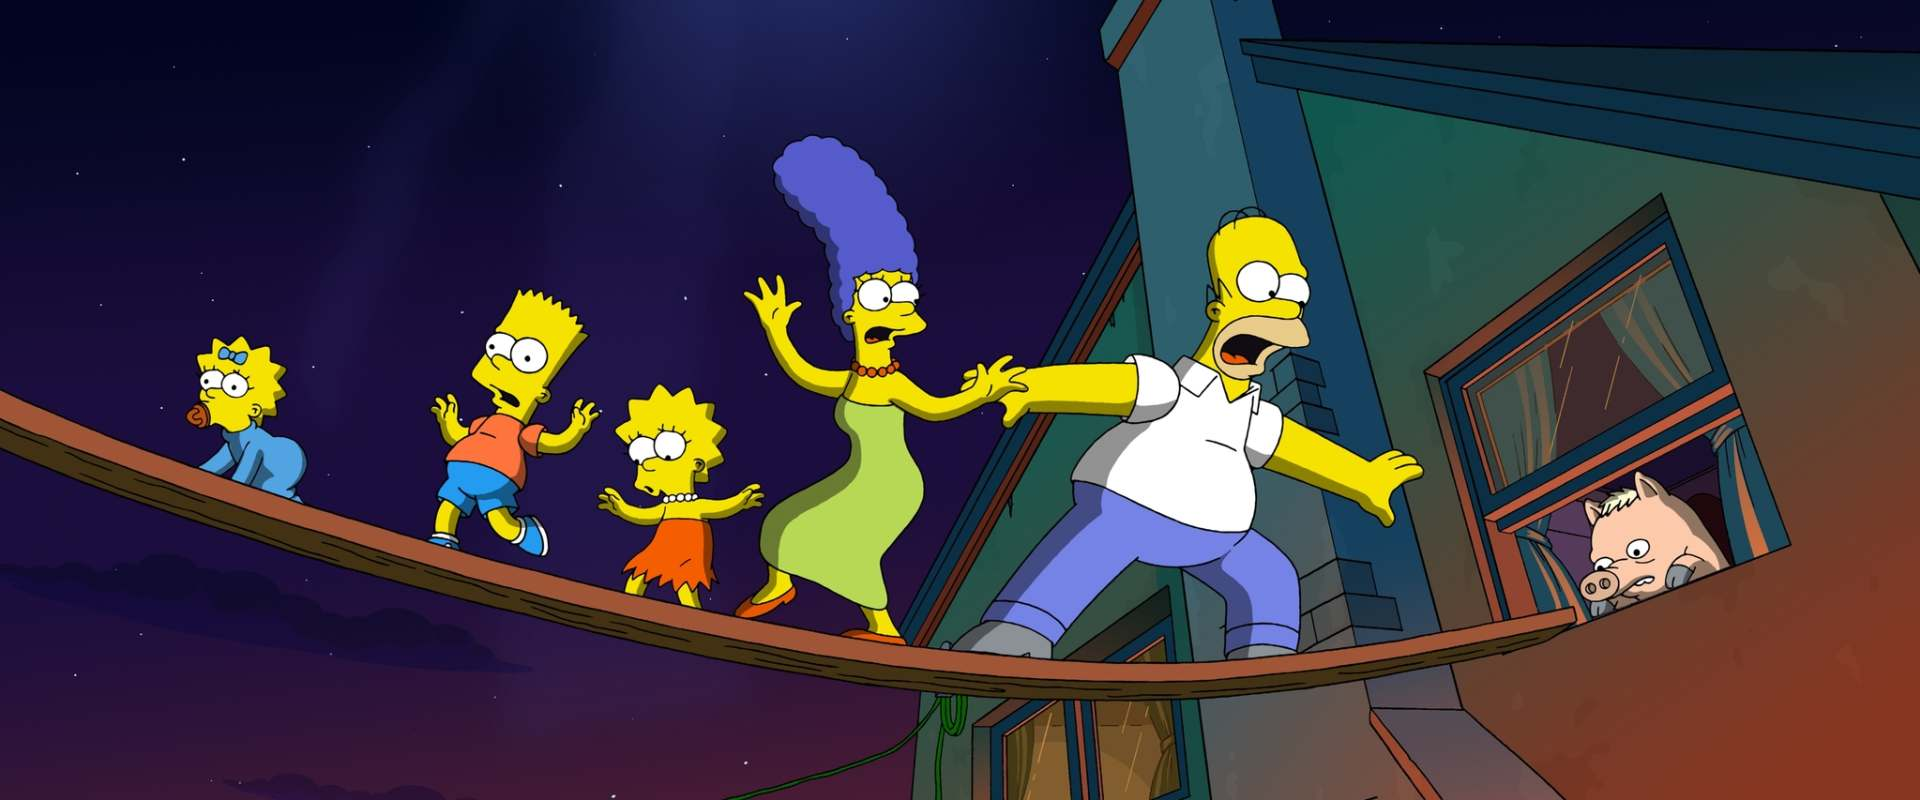 The Simpsons Movie background 2